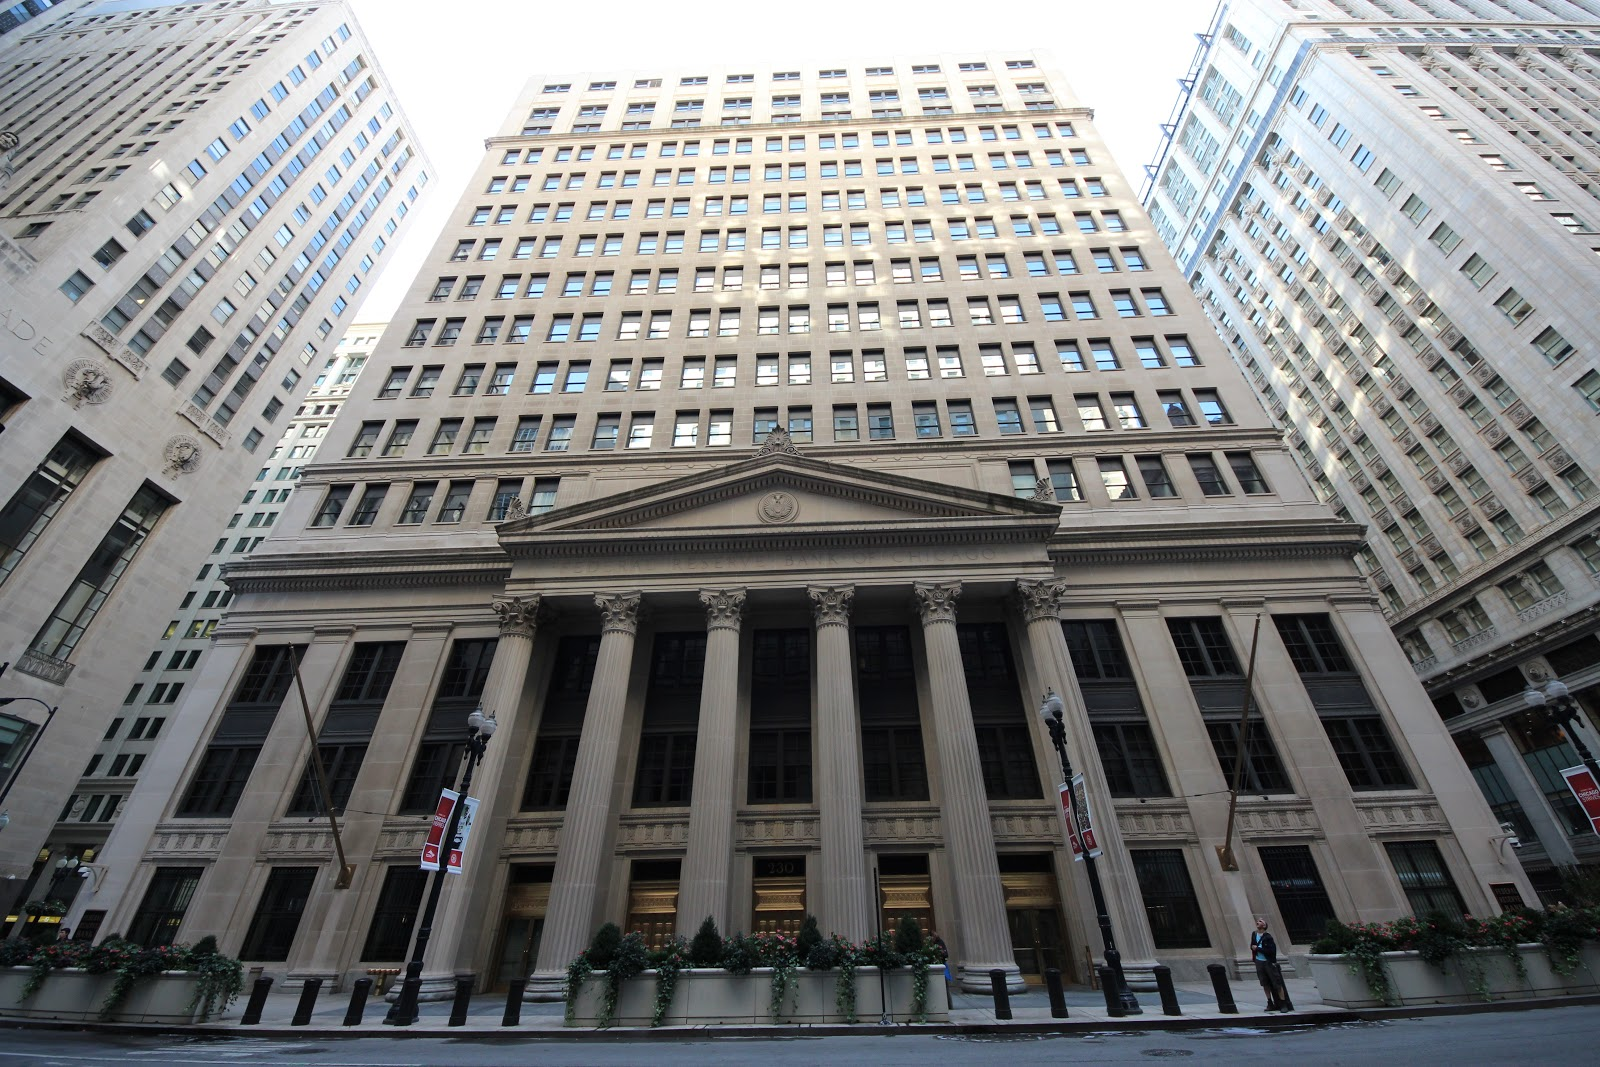 20120929_Federal_Reserve_Building_of_Chicago.JPG